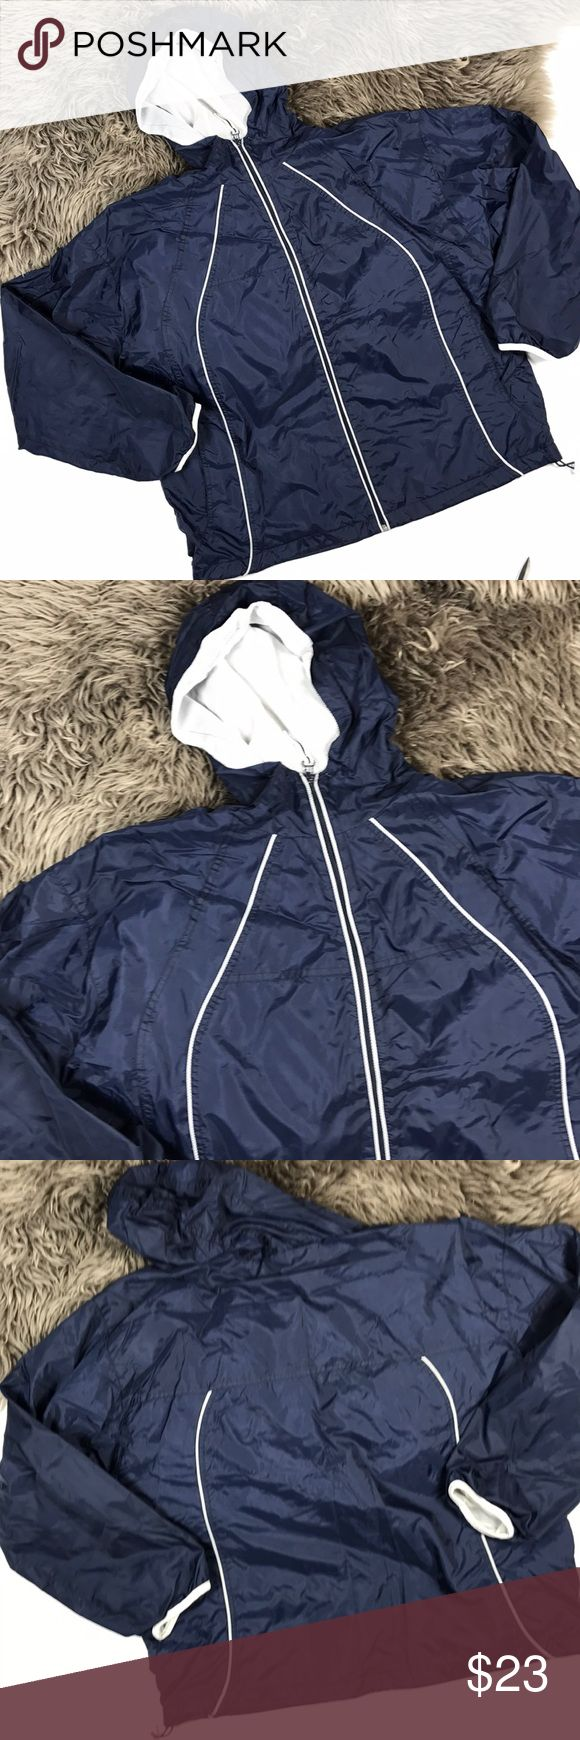 Wilson windbreaker jacket Men's jacket adjustable straps at bottom. White lining throughout. Breathable inside lining. Small stain on inside. Length: 26 in shoulders: 22.5 armpits: 25.5 sleeves: 22 in oversized fit. Hood string missing ‼️‼️BLACK Friday Sale ONLY‼️‼️back to normal price Sunday night Wilson Jackets & Coats